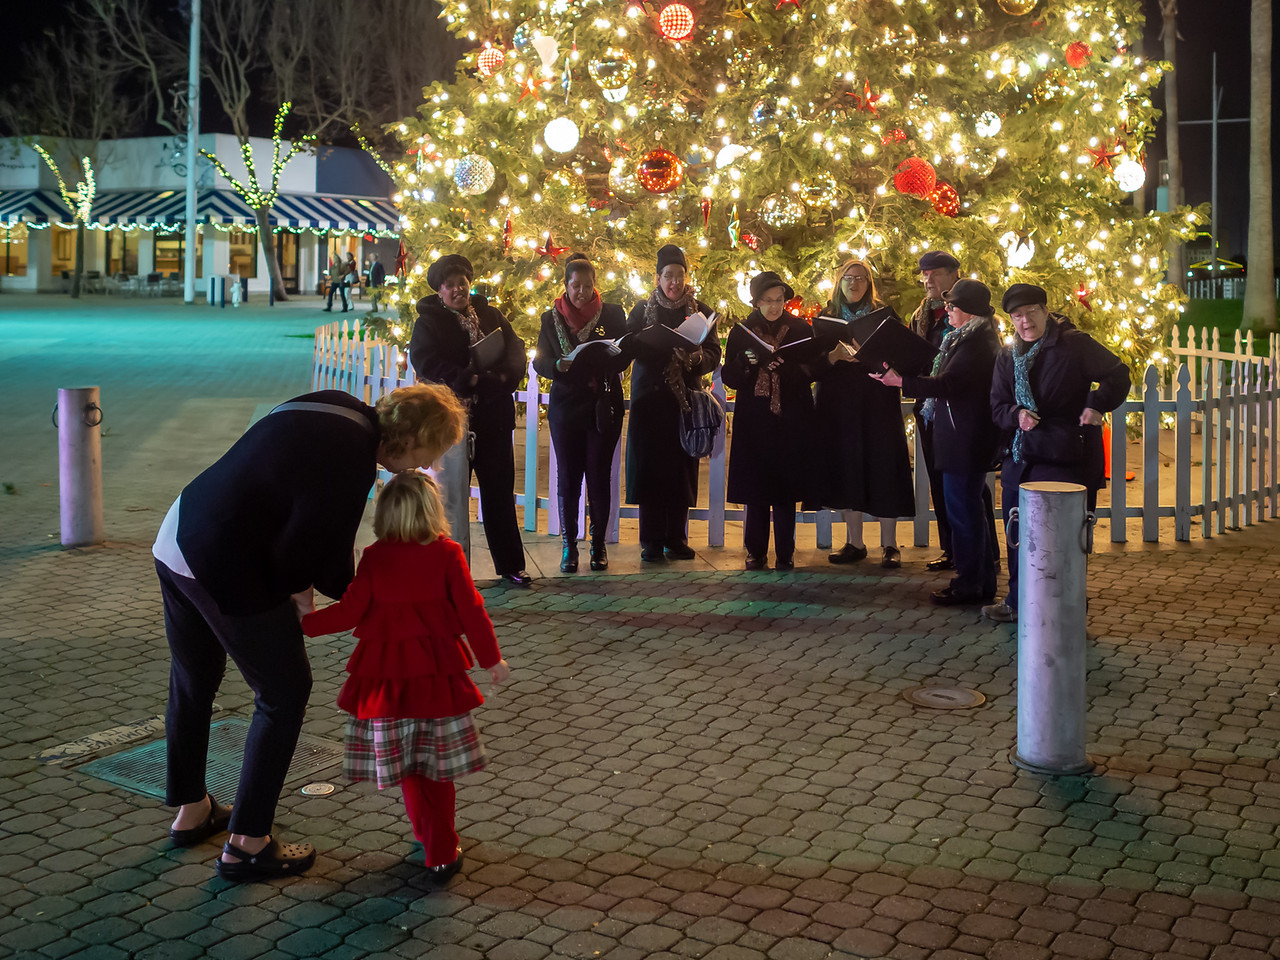 Jack London Square, December 8 - The caroling started by the big tree and collected the usual smattering of onlookers.